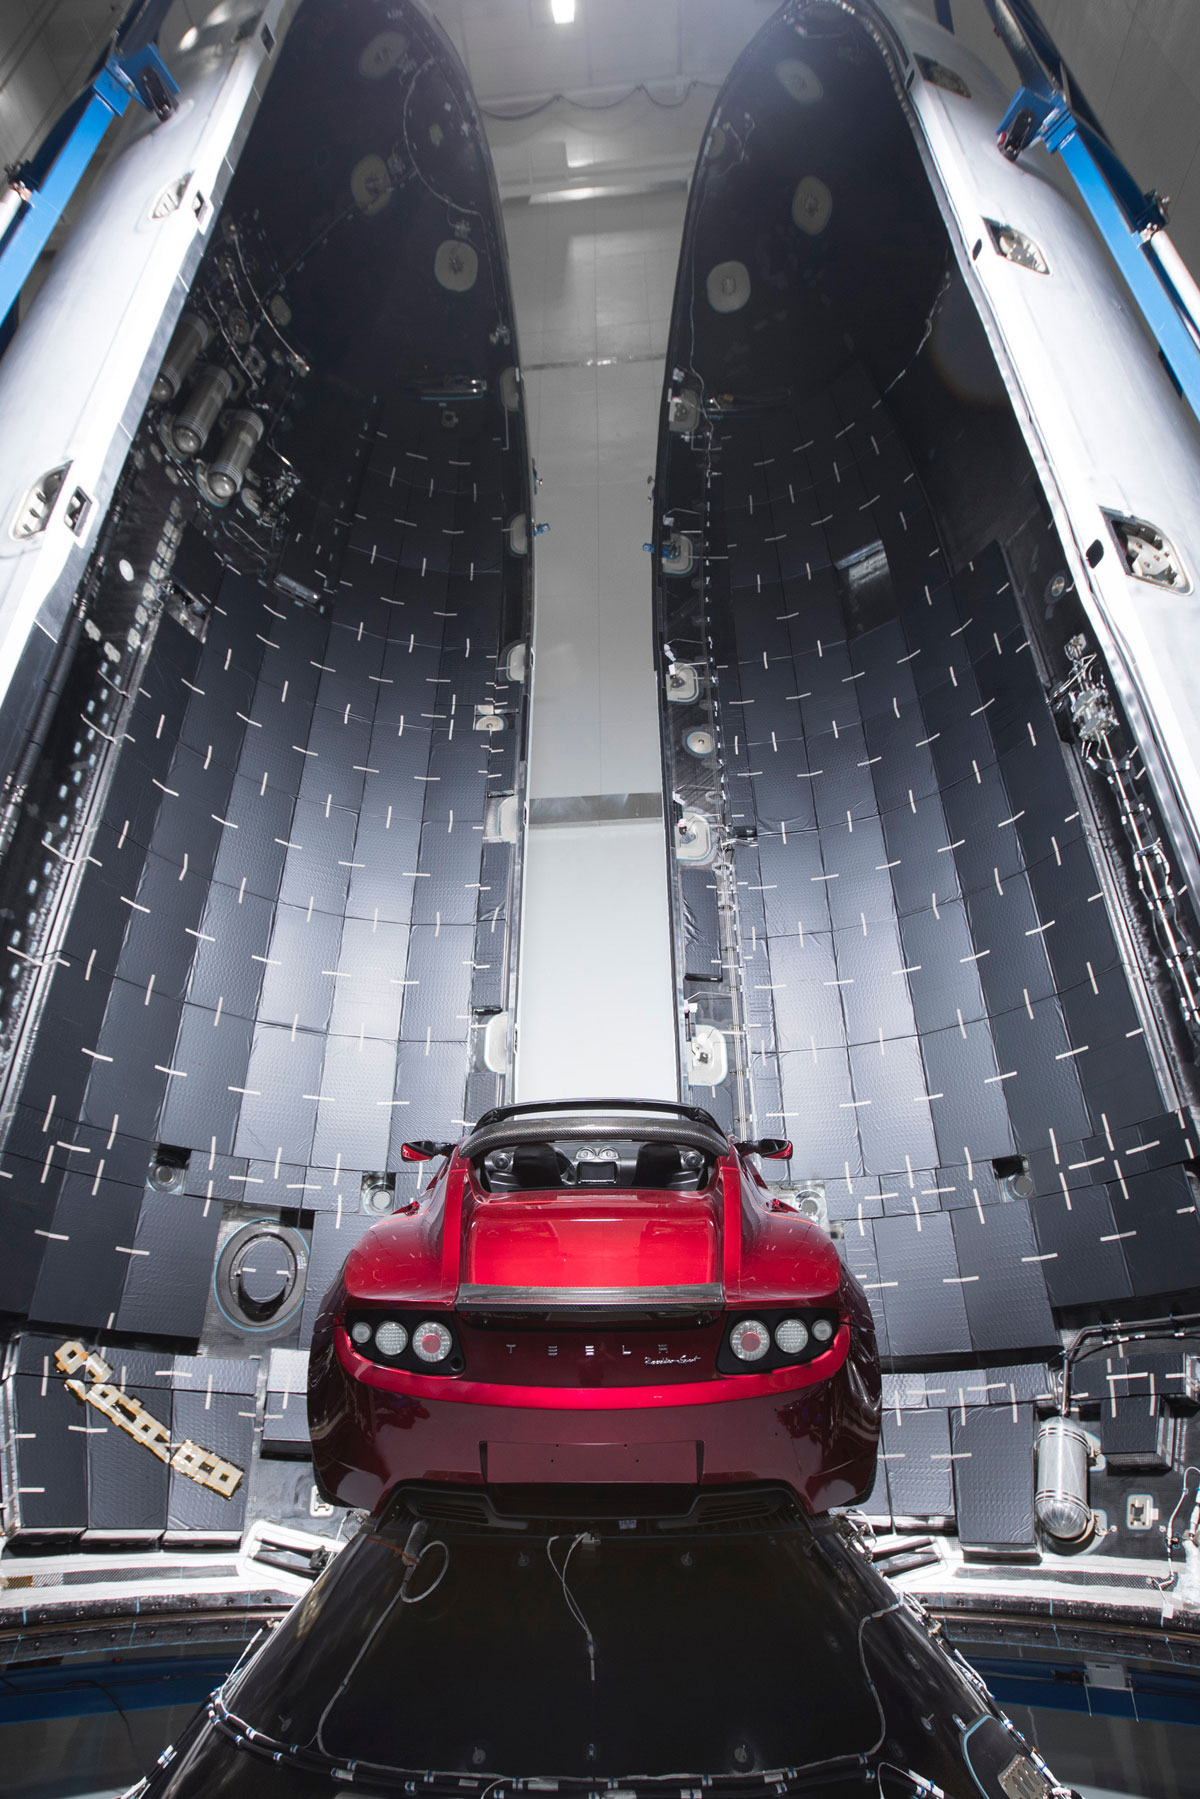 spacex falcon heavy launch tesla to mars 10 SpaceX Just Launched the Worlds Most Powerful Rocket and Sent a Tesla to Mars